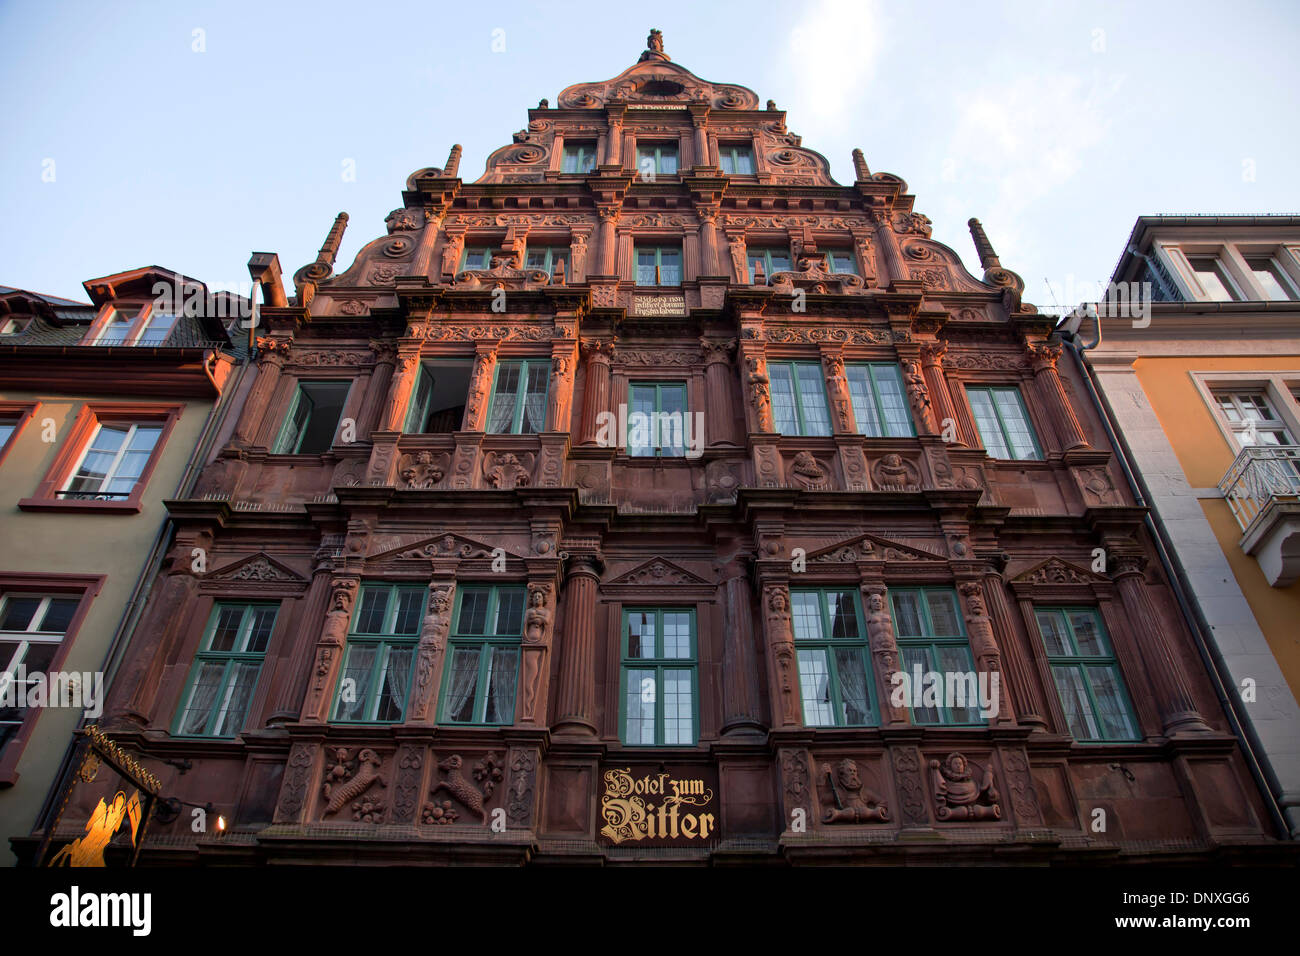 Hotel Zum Ritter in the old town , Heidelberg, Baden-Württemberg, Germany - Stock Image